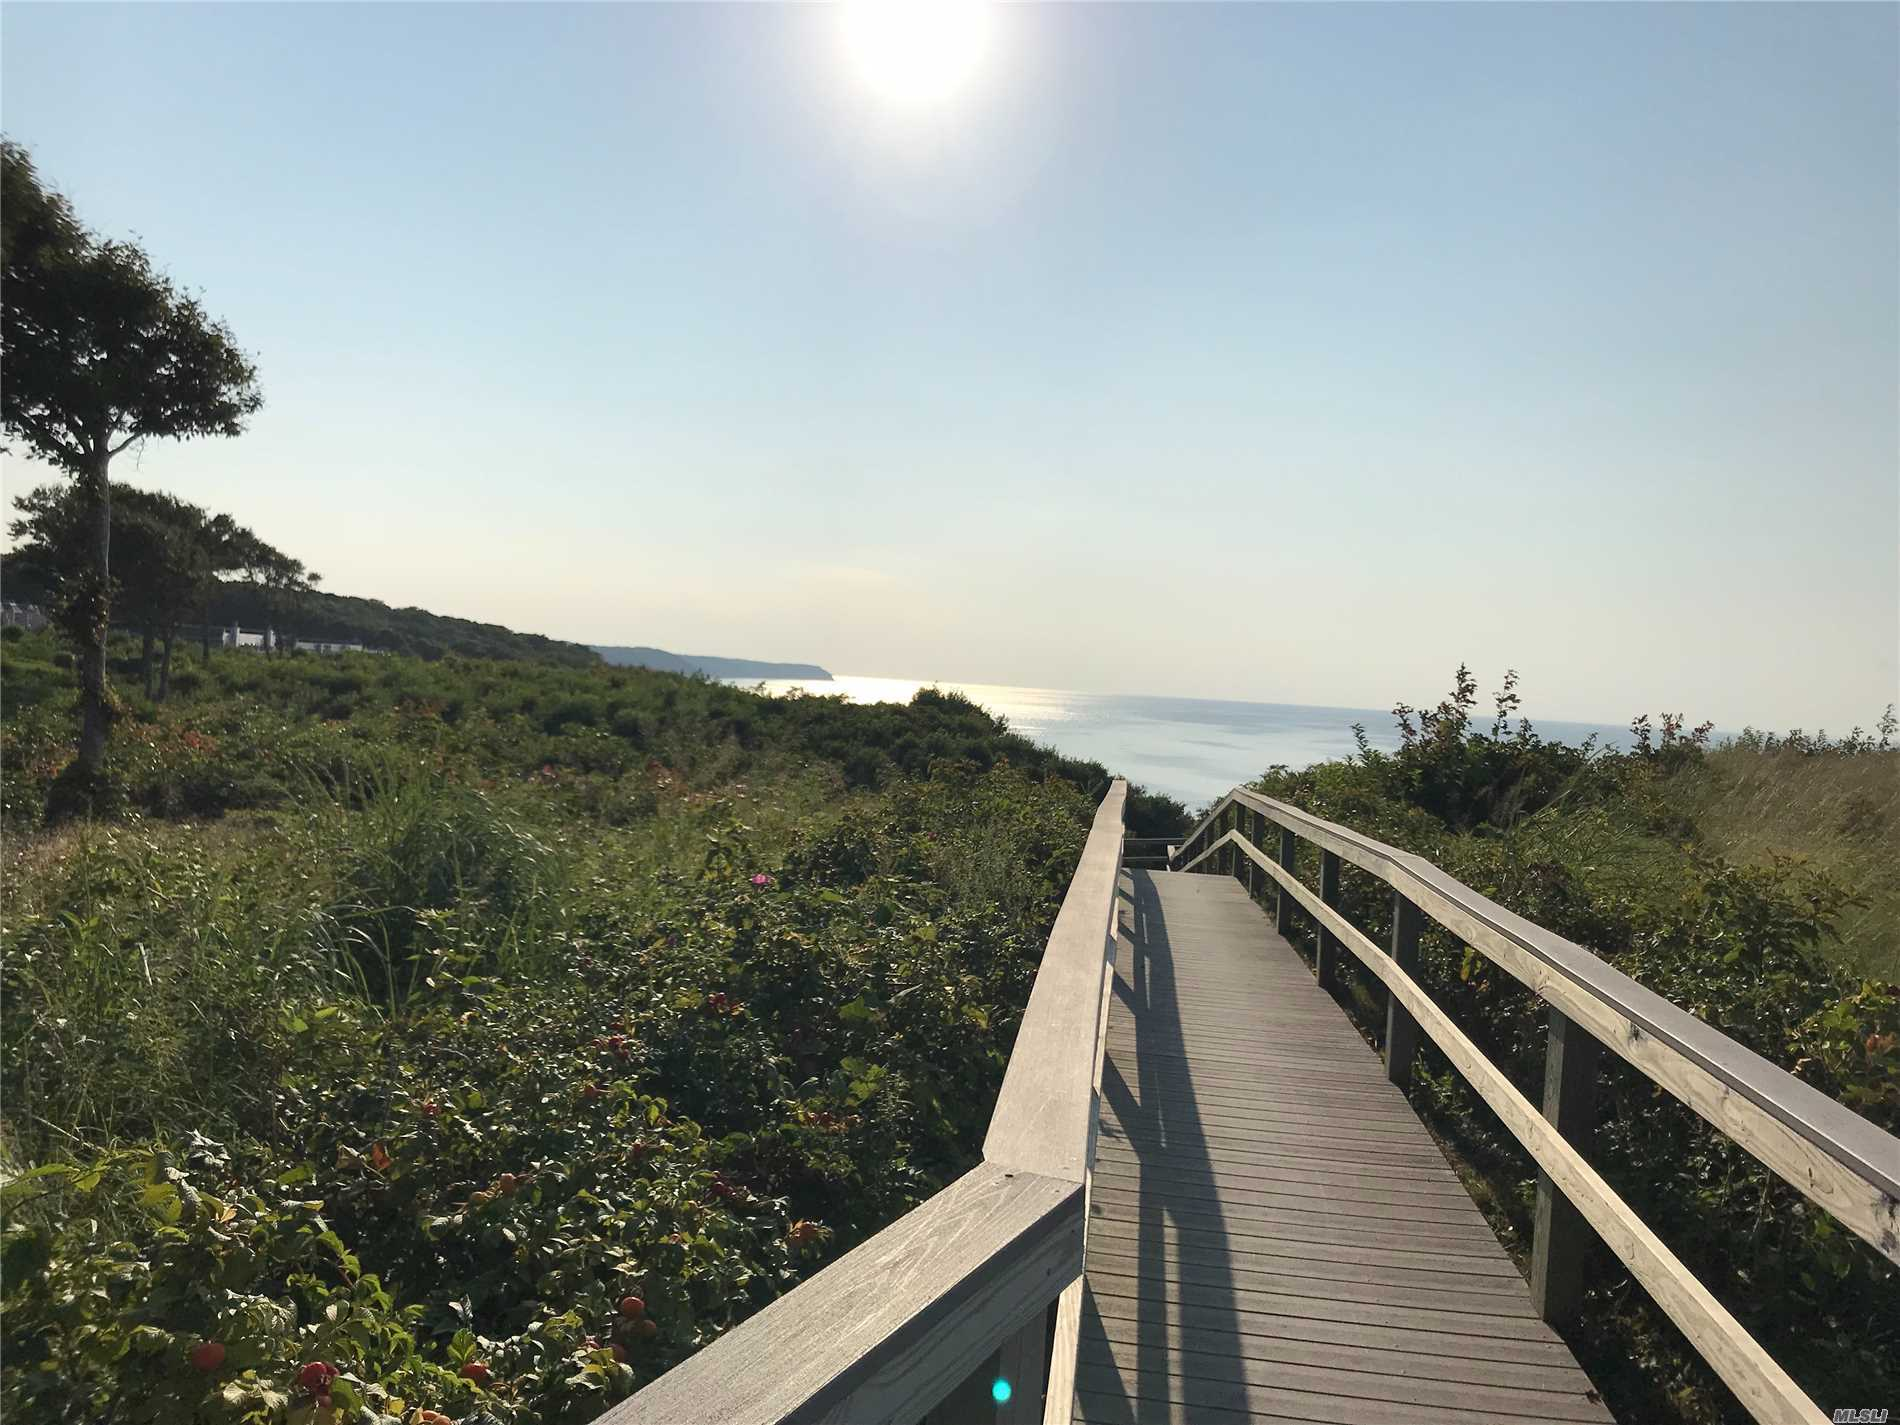 The Beautiful Bluffs At Baiting Hollow On The Sound Is Your Dream Getaway Spot To The North Fork! Enjoy Deeded Beach Rights And So Much More! The Vineyards! Breweries! Tanger Outlets! Splish Splash! Farm Country And Restaurants To Suit Every Taste You Can Imagine. Enjoy Carefree Living In An Exclusive Waterfront Condominium Complex. Ground Floor Unit A Plus!